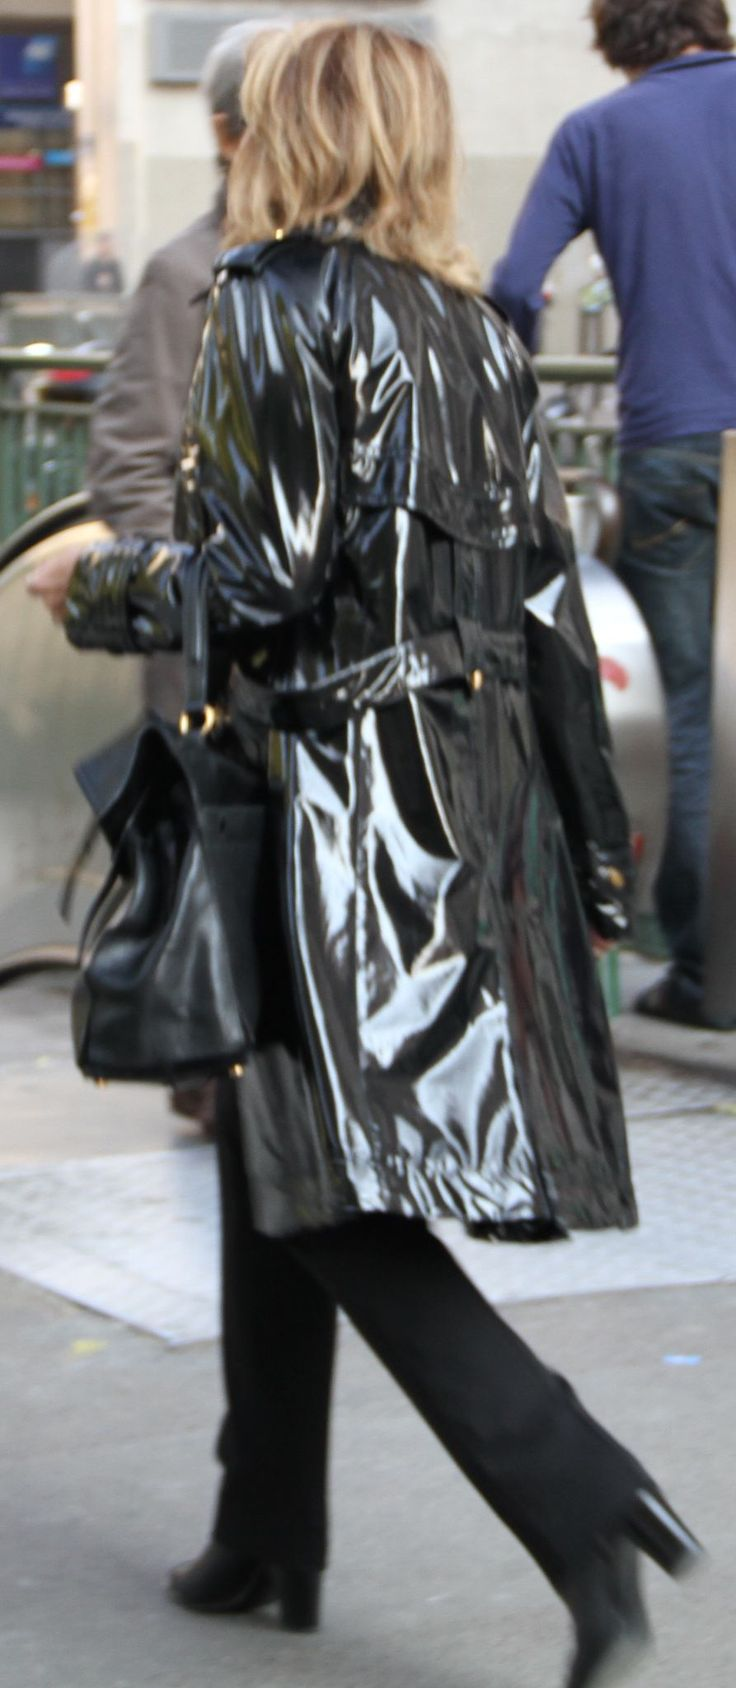 Black Pvc Mac Raincoats Pinterest Black And Mac